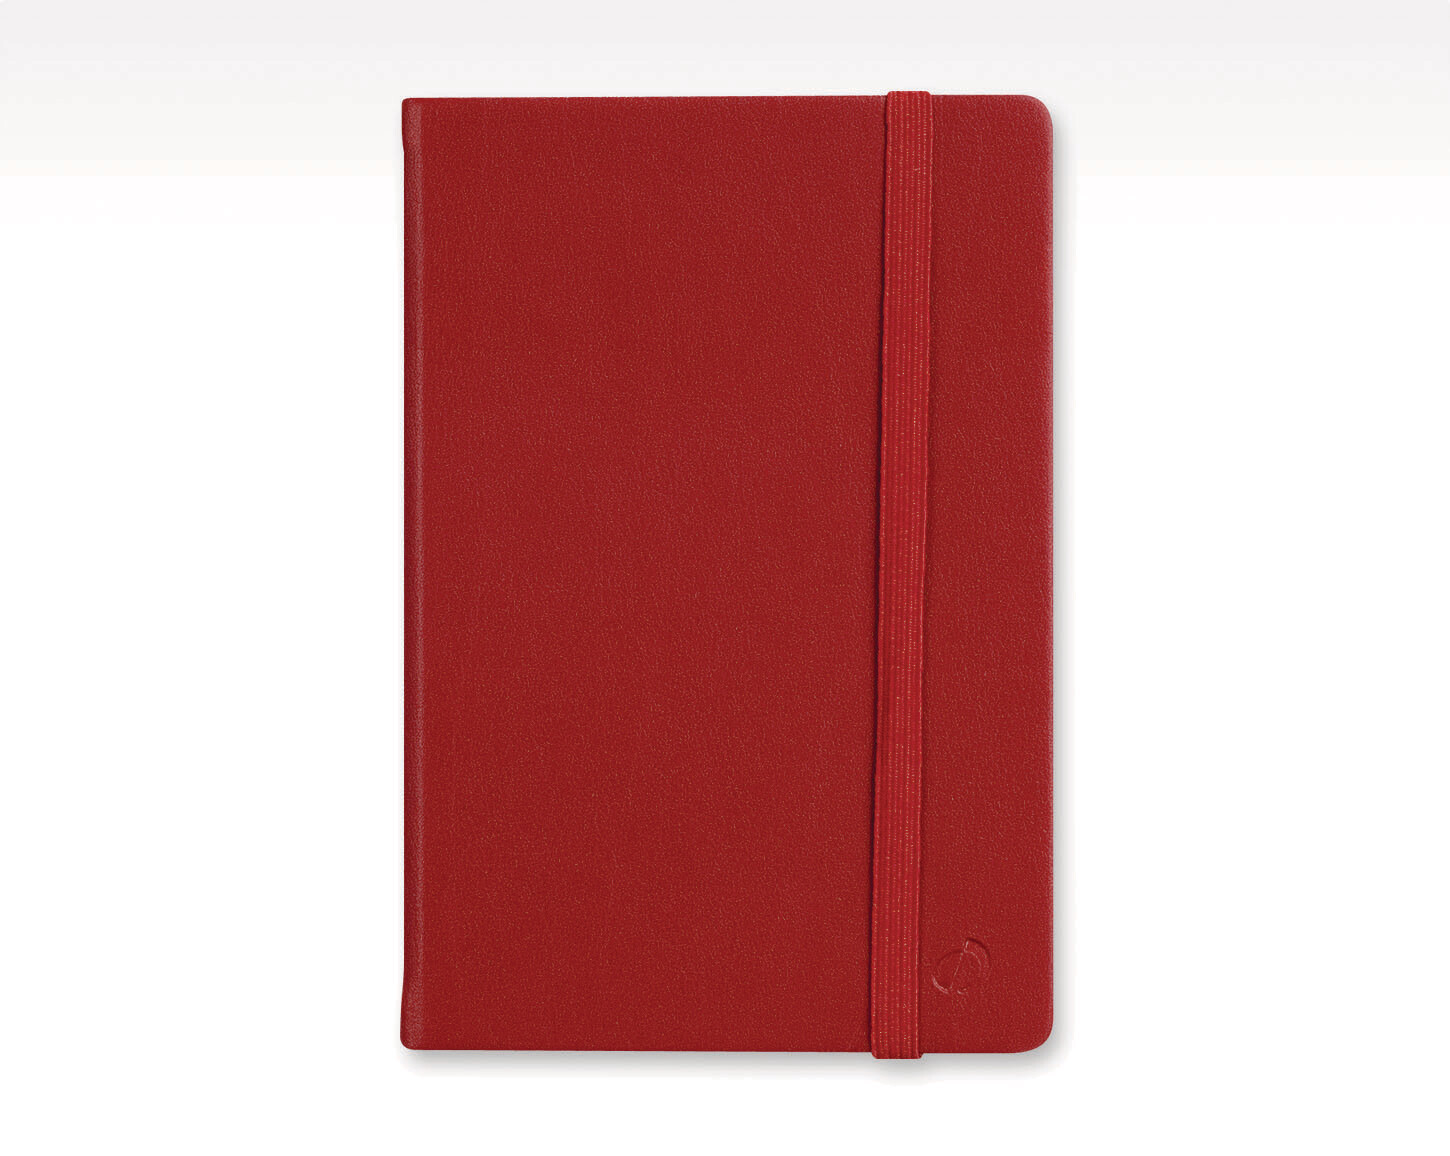 Notebook, Lined, A5 Red, 192 Pages, Habana